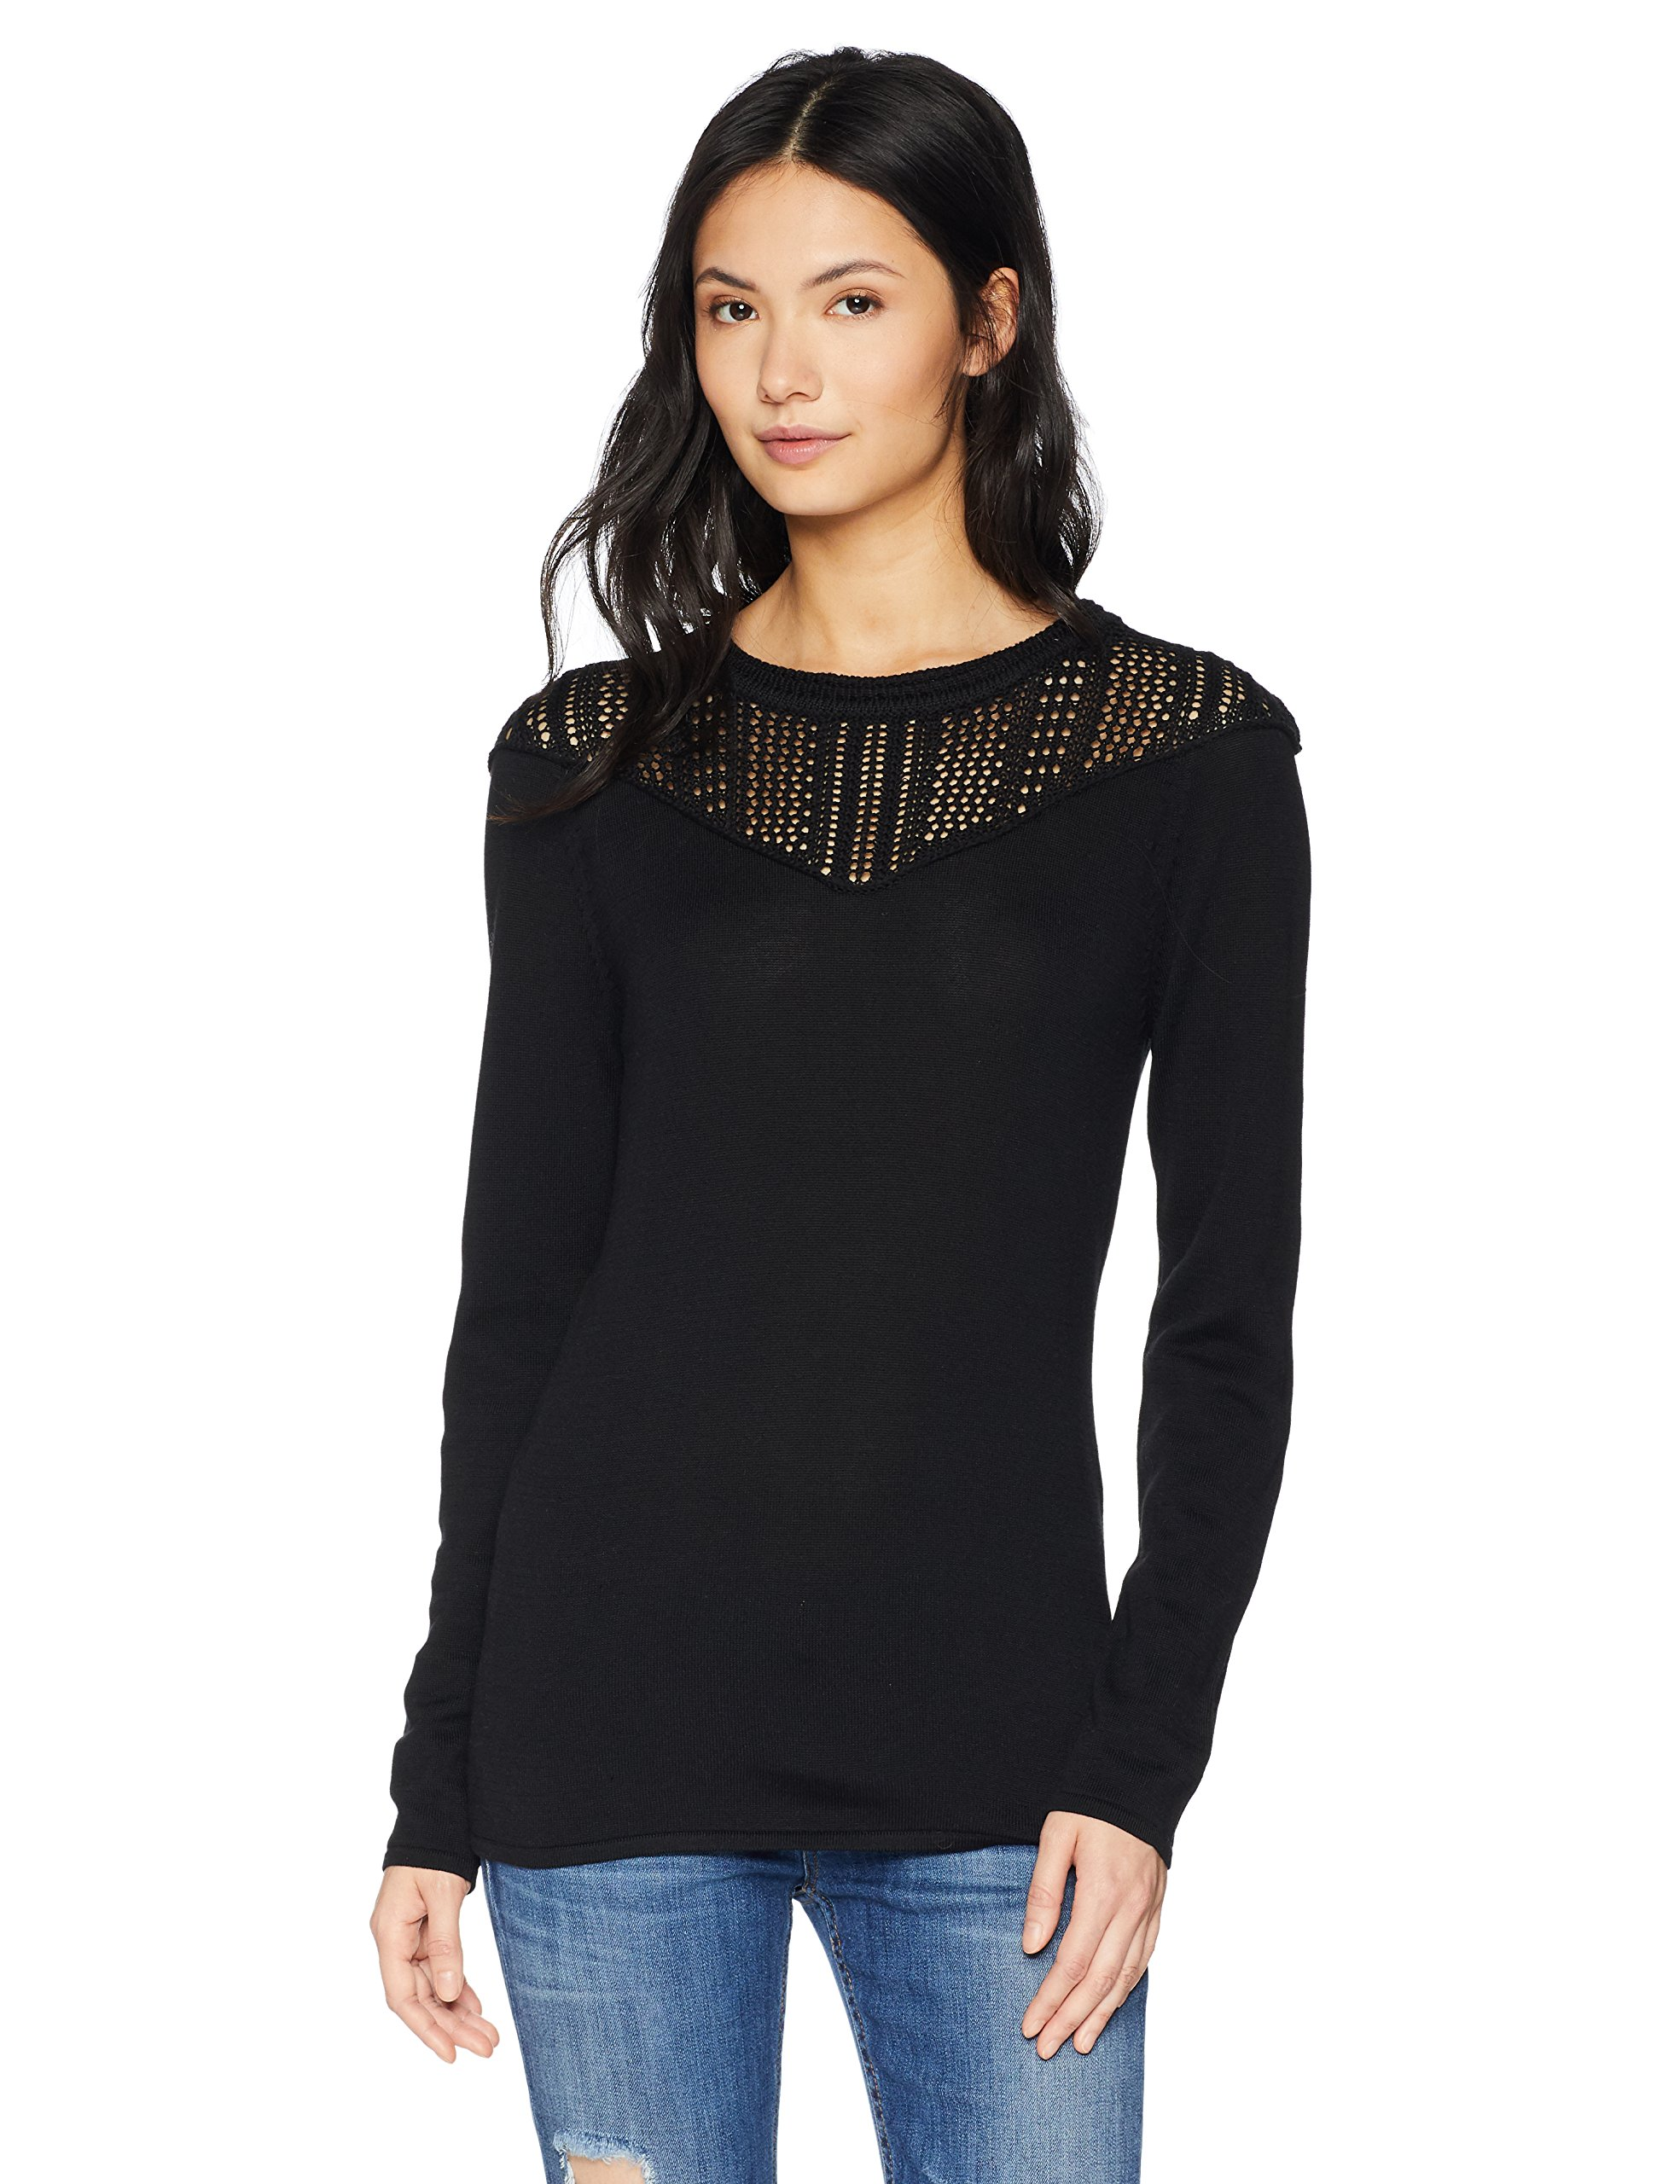 Cable Stitch Women's Pointelle Inset Sweater Black Large